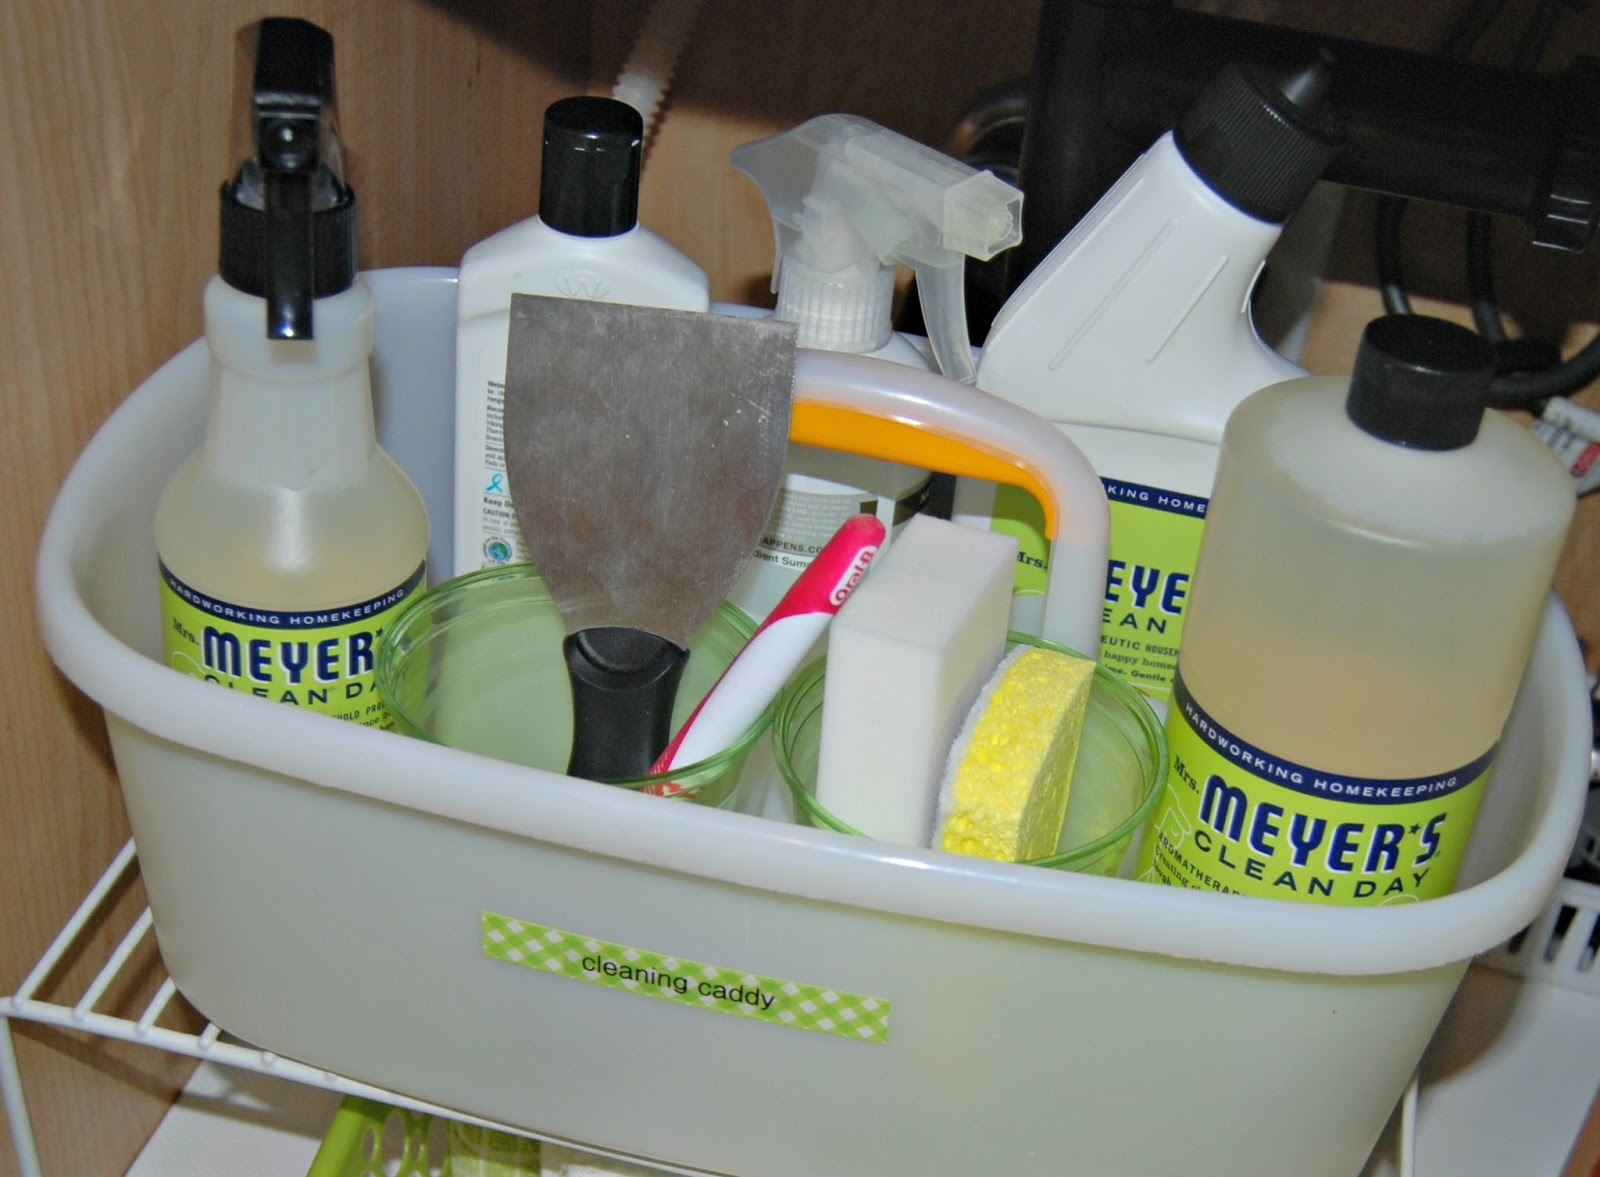 10 Steps for Organizing Under Sink Kitchen Cabinets - Sweet Shoppe on cleaning marble sink, cleaning up kitchen, cleaning kitchen table, cleaning kitchen utensils, cleaning kitchen drawers, cleaning kitchen cupboards, cleaning kitchen cabinets with tsp, cleaning kitchen dishwasher, cleaning kitchen furniture, cleaning copper sinks, cleaning kitchen floor, cleaning kitchen grill, cleaning kitchen counter, cleaning kitchen faucet, cleaning kitchen microwave, cleaning kitchen hood, fish cleaning sink, cleaning toilet, cleaning granite sink, cleaning kitchen pots,